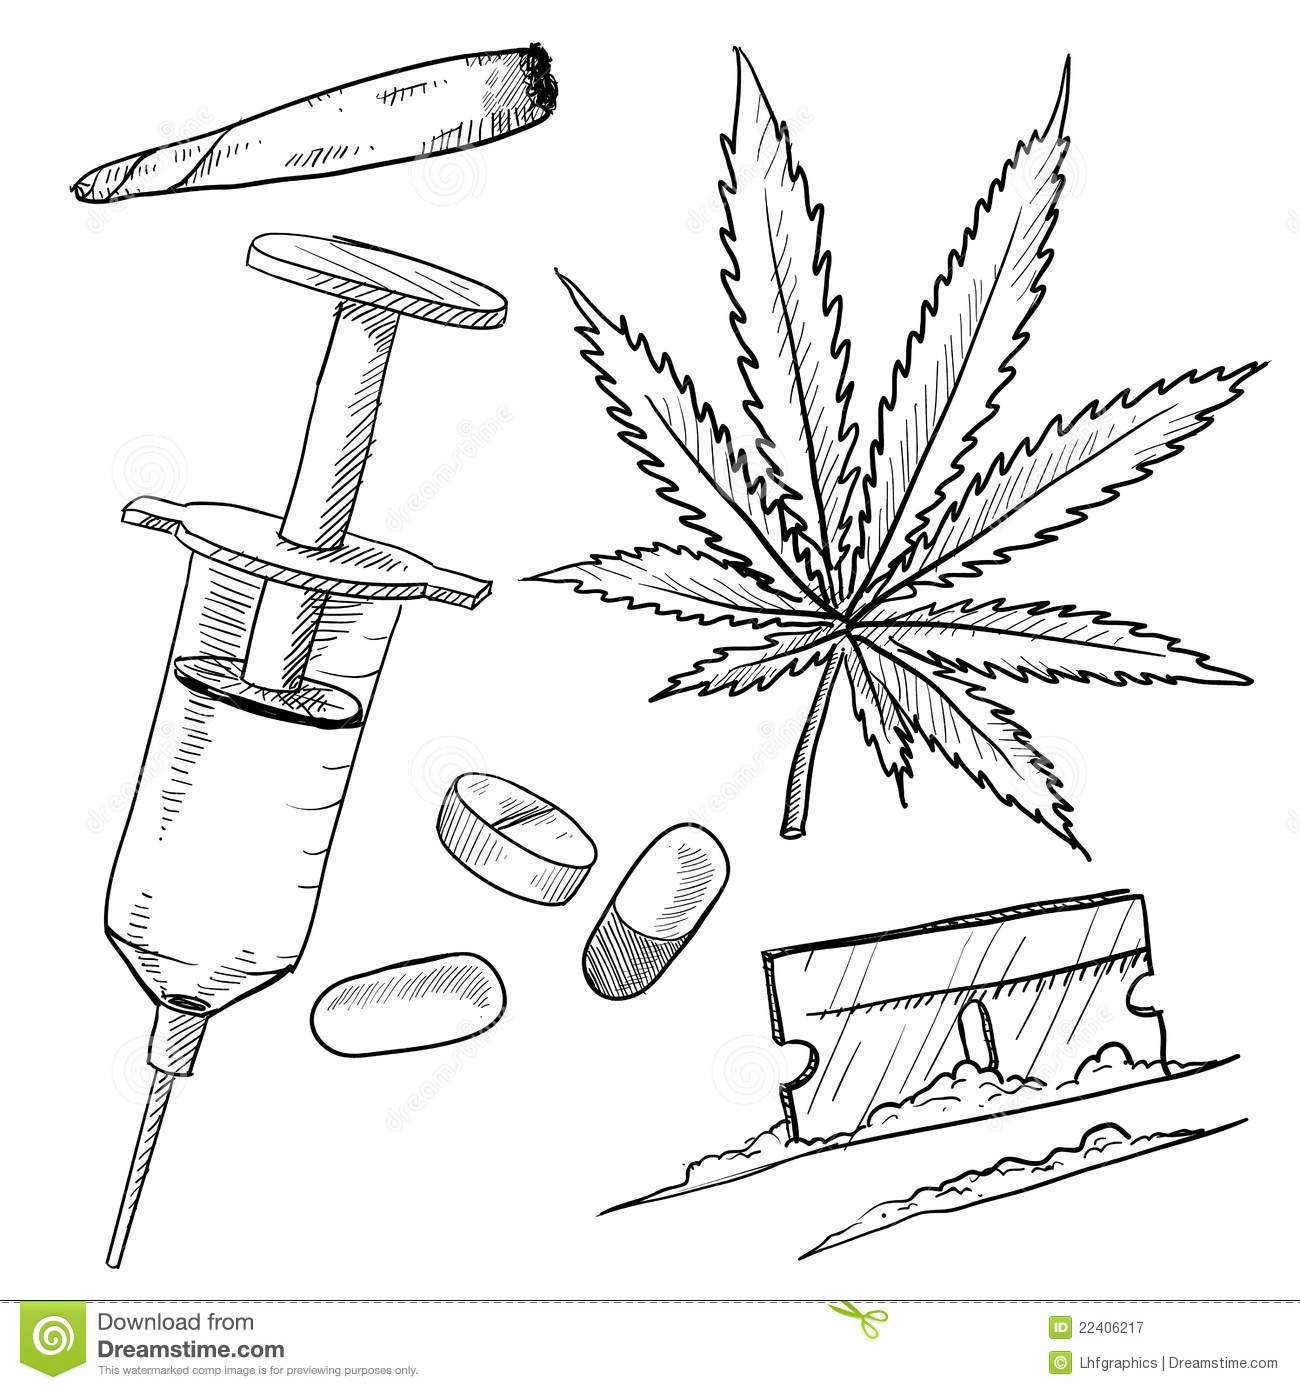 cocaine toucher coloring pages - photo#23